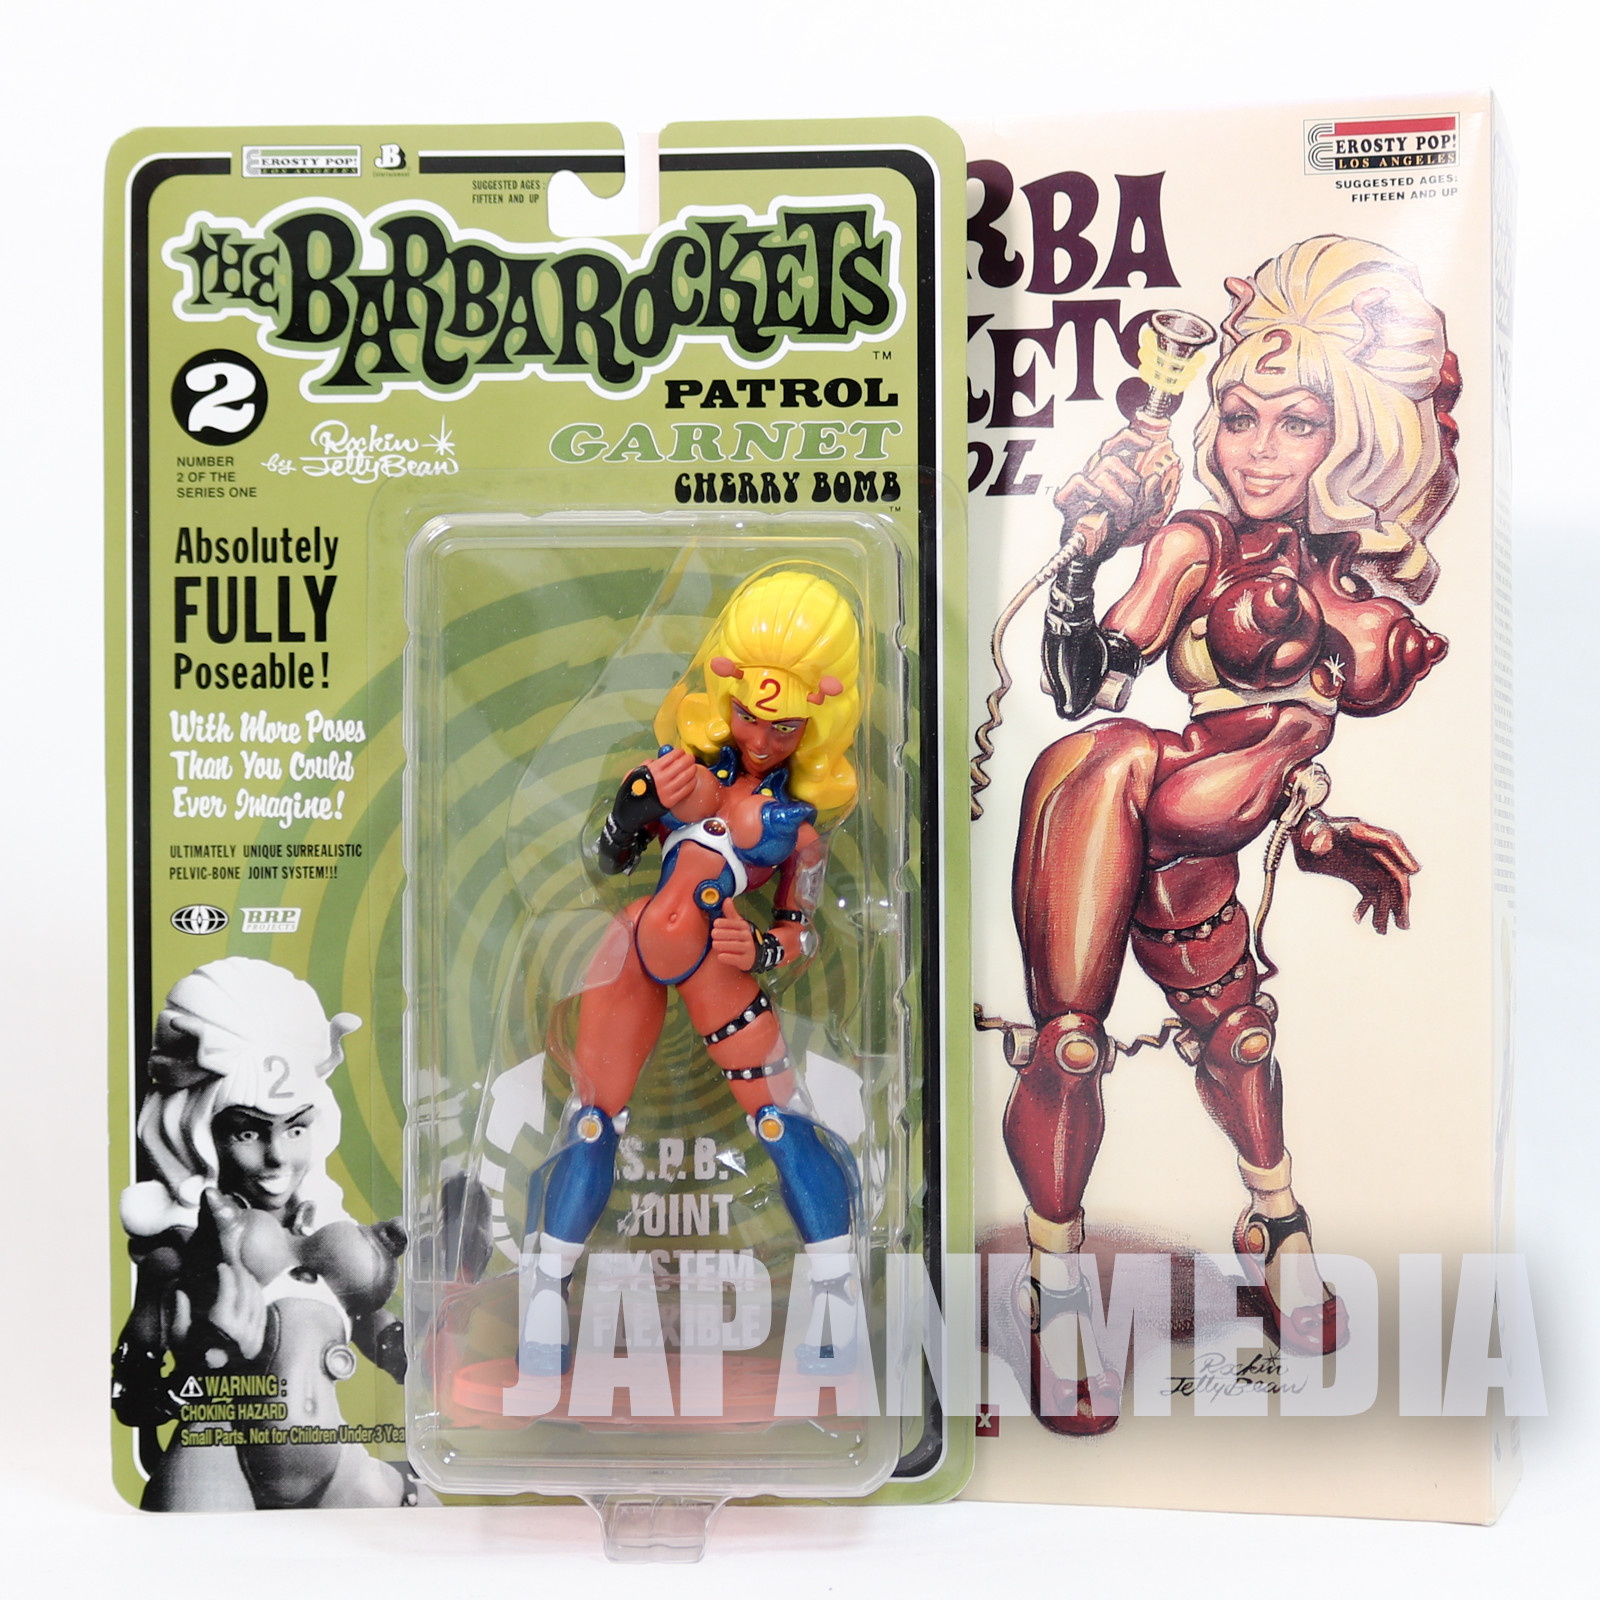 Barba Rockets Patrol Garnet 1/10 Action Figure Rockin' Jelly Bean JAPAN